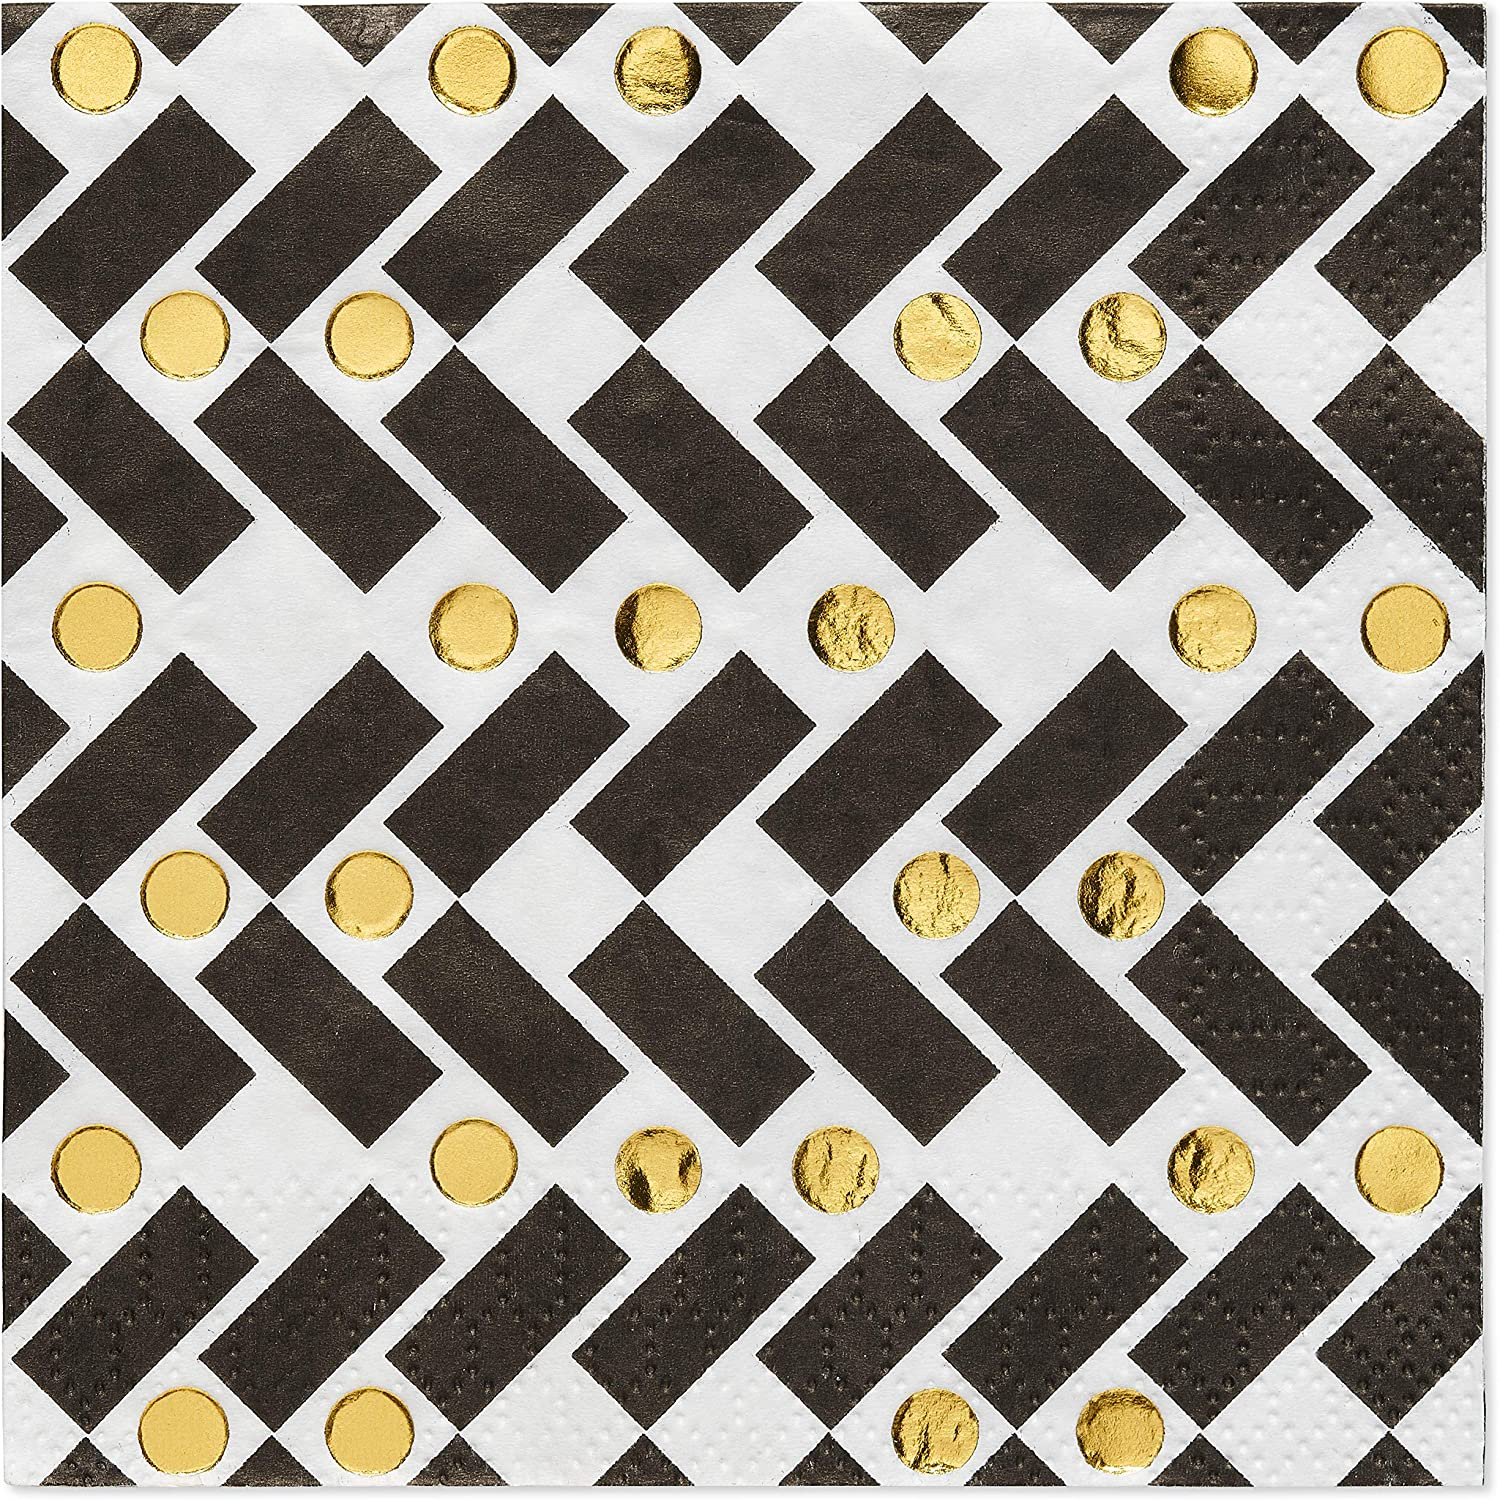 Papyrus Party Supplies Beverage Napkins, Black and Gold Rush (20-Count)